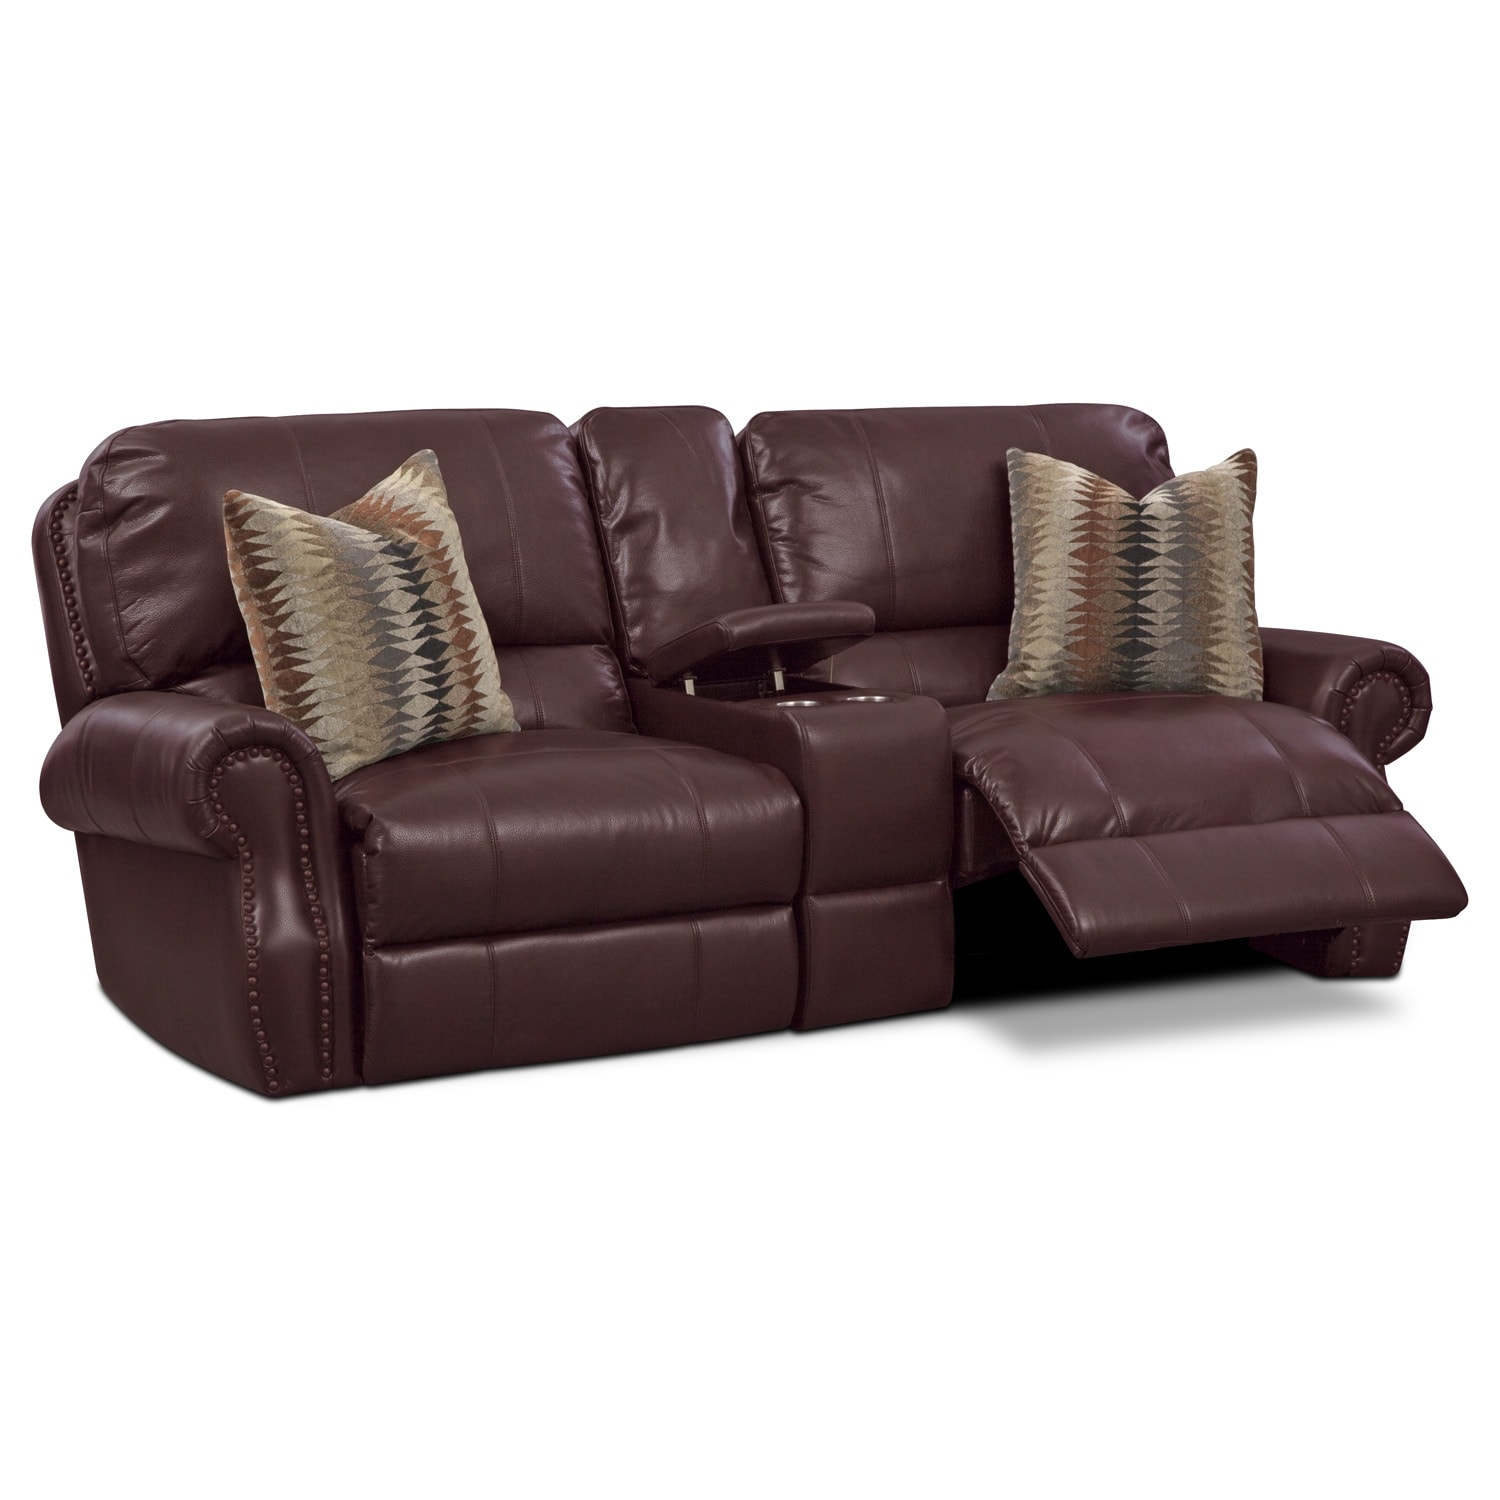 Princeton 3 Pc. Power Reclining Sofa with Console